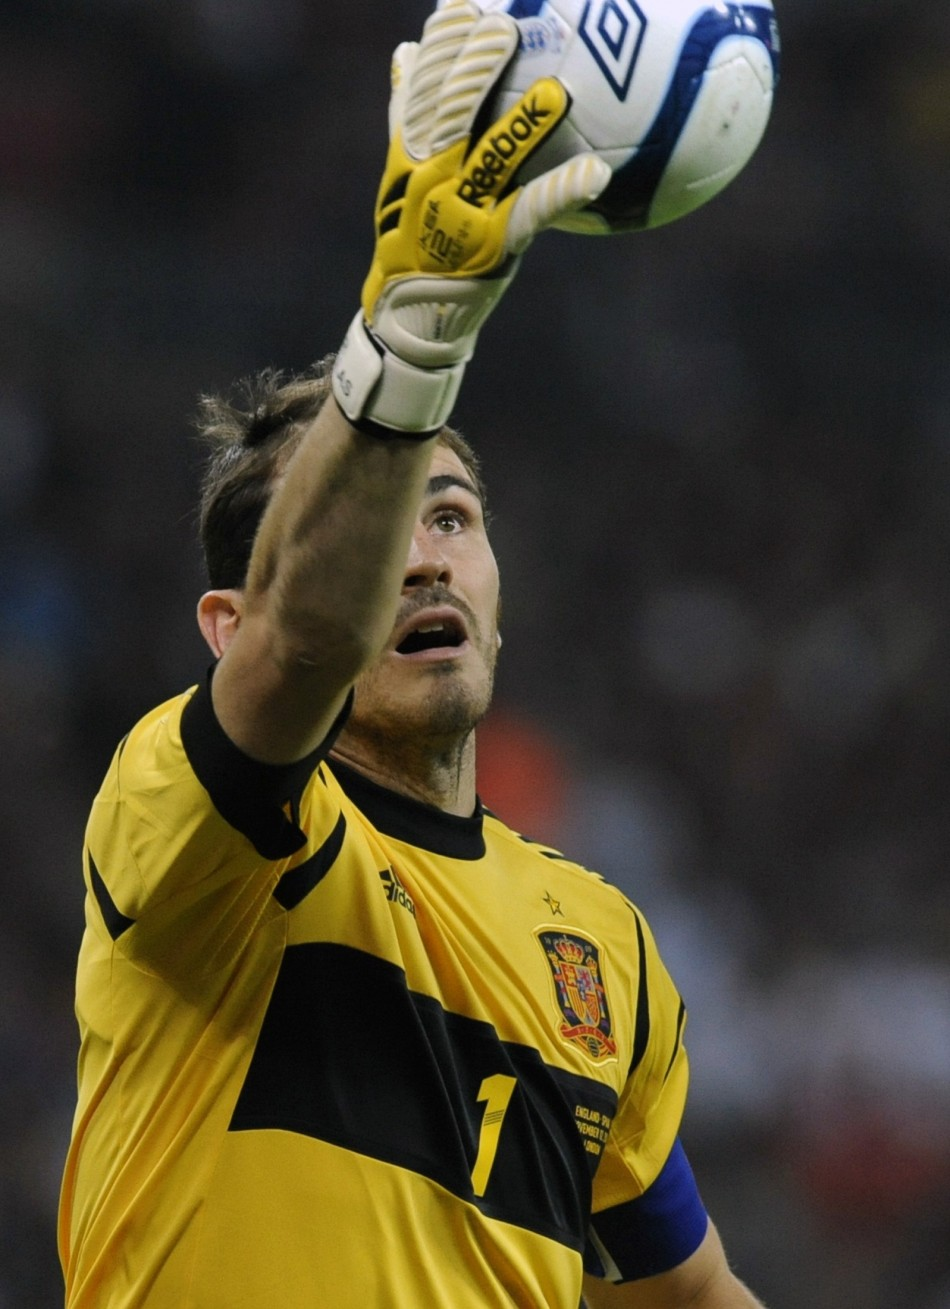 Spains Casillas catches a ball before his international friendly soccer match against England at Wembley Stadium in London